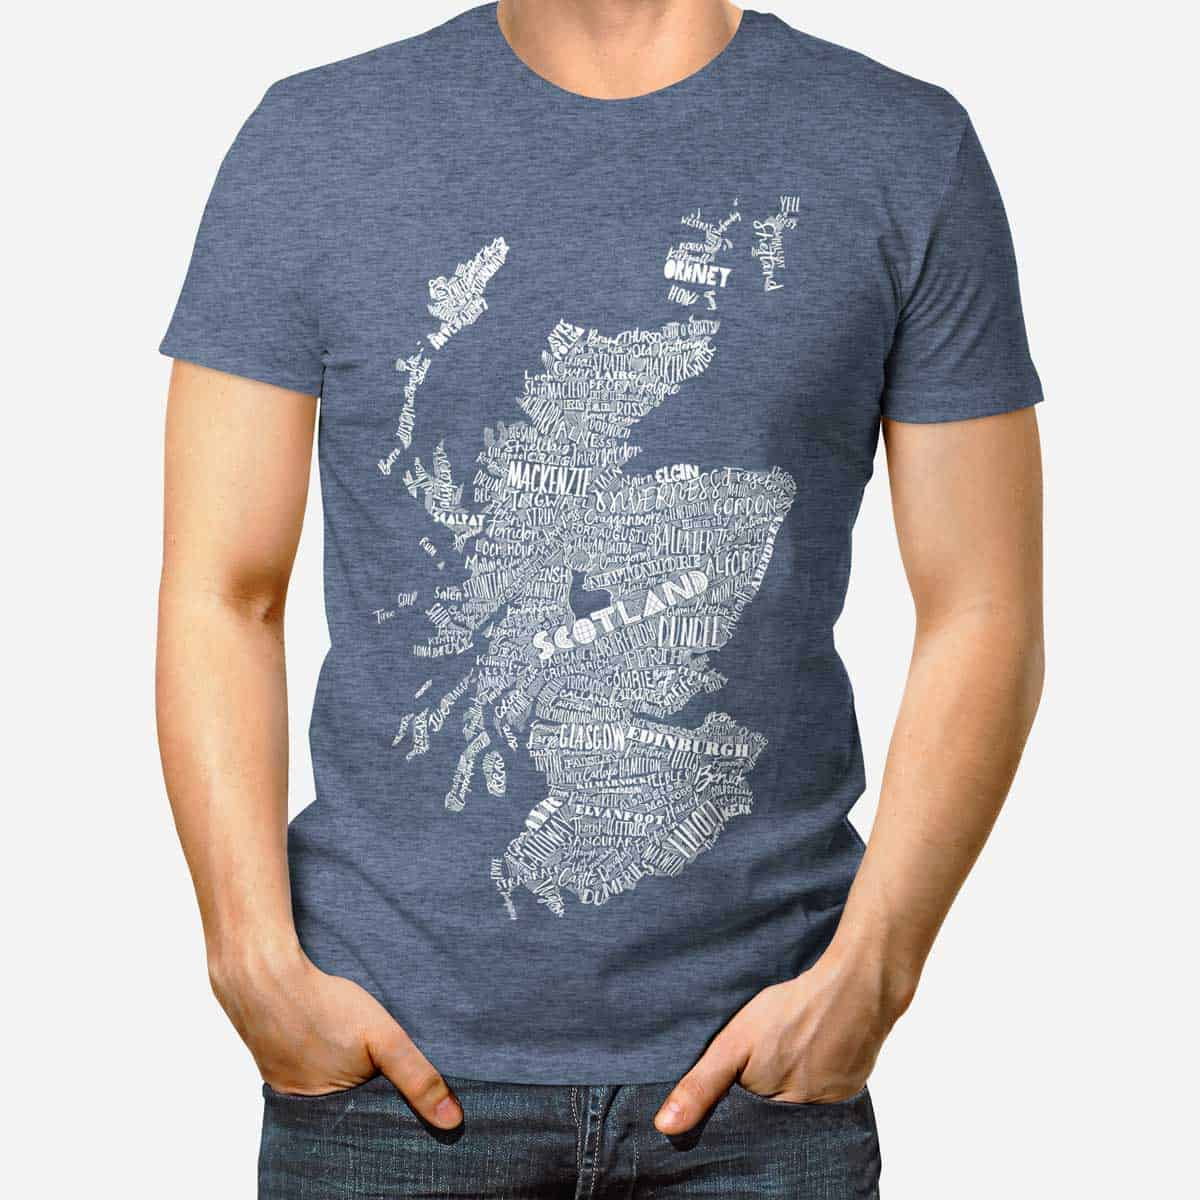 Gillian kyle scottish clothing scotland map mens tee shirt for Tahari t shirt mens